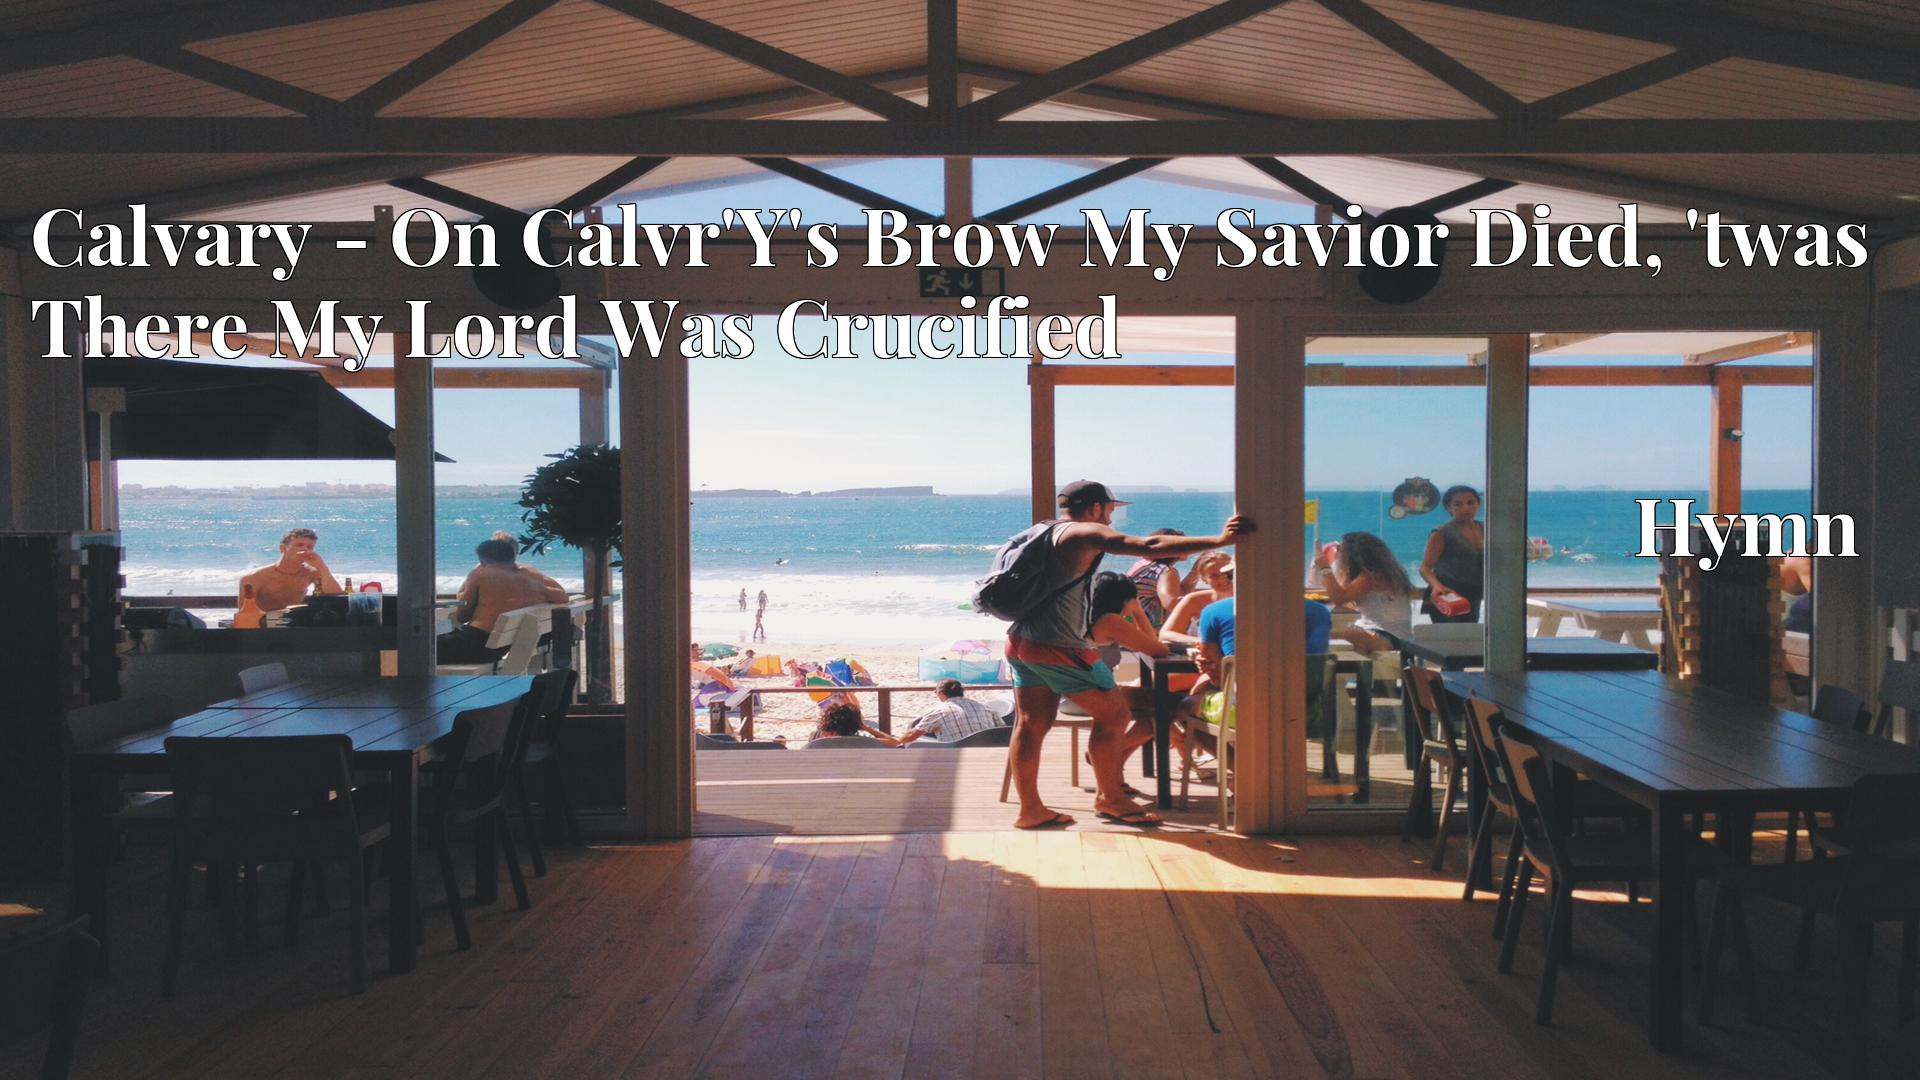 Calvary - On Calvr'Y's Brow My Savior Died, 'twas There My Lord Was Crucified Hymn